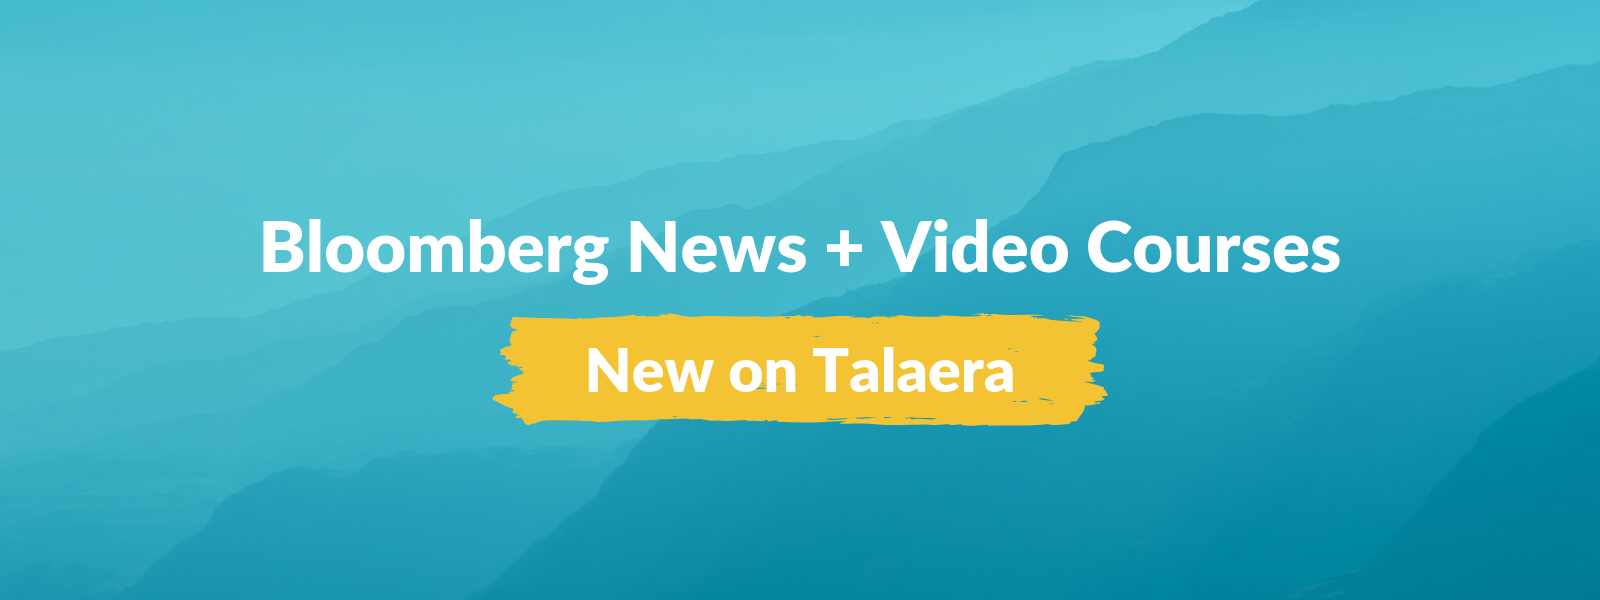 Talaera Product Update 2019 Bloomberg News and Video